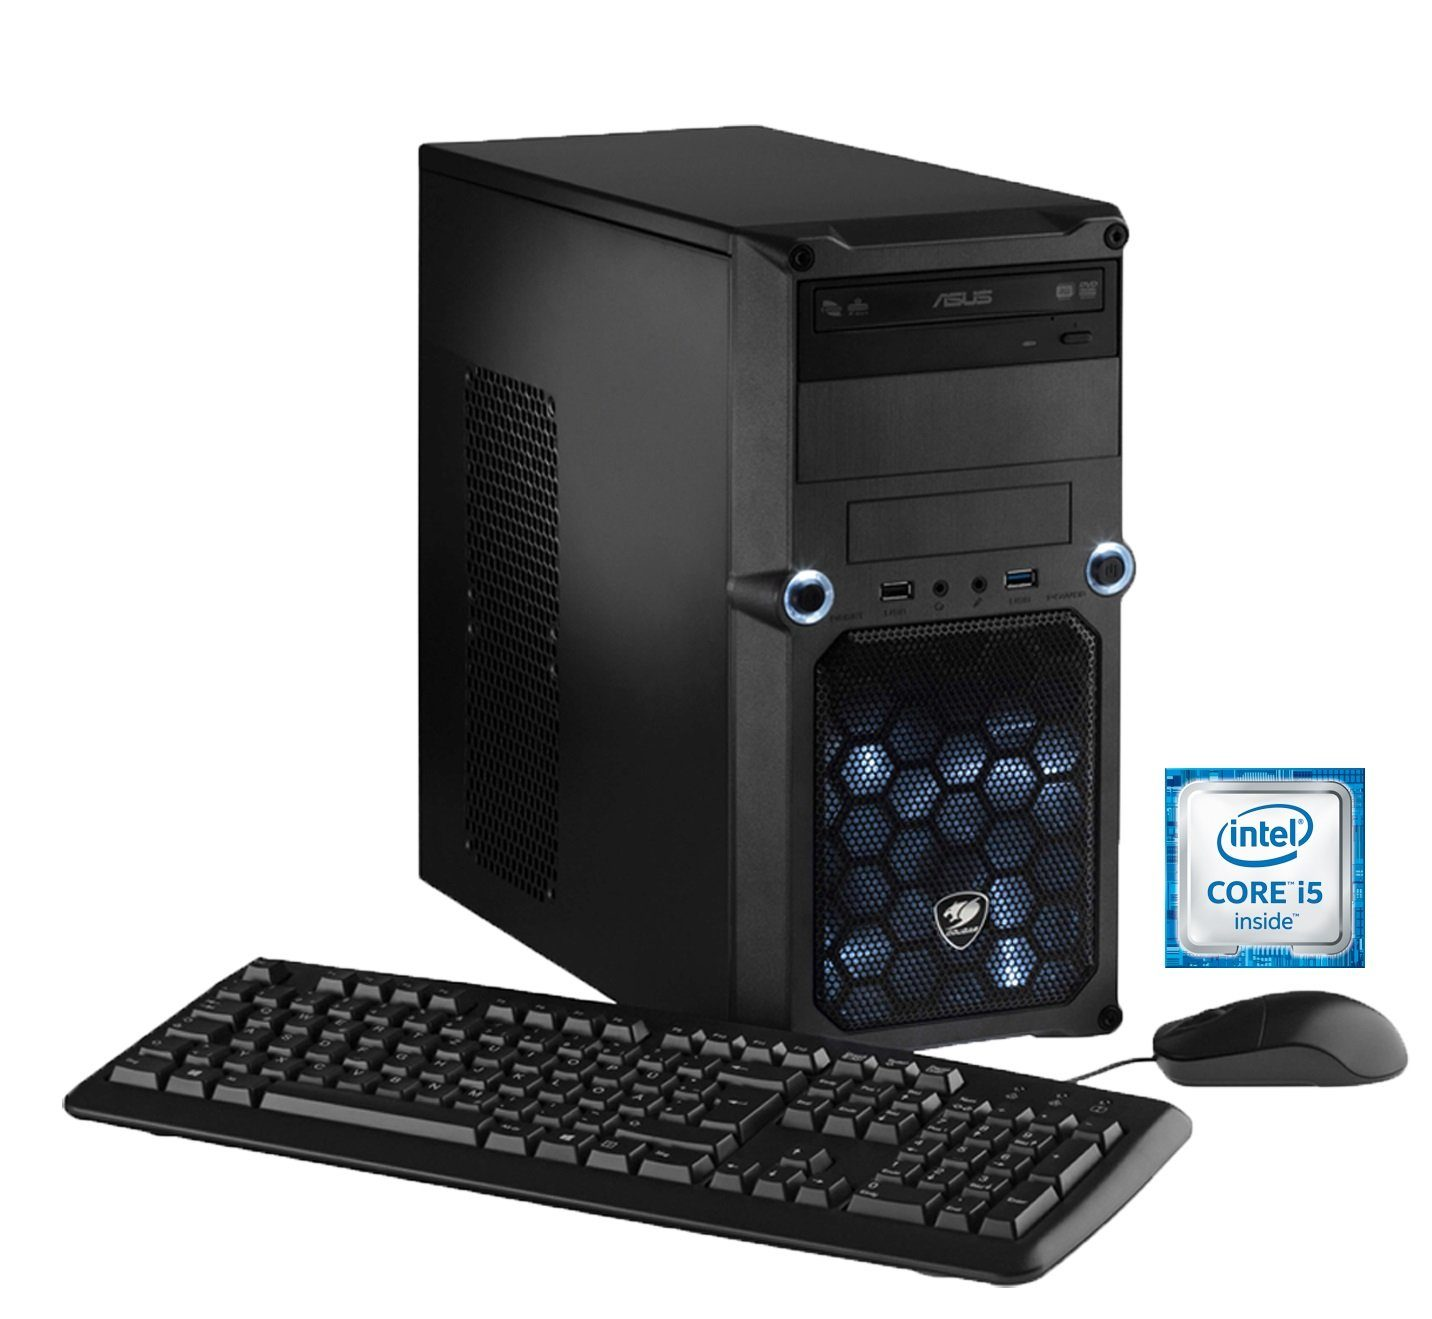 Hyrican Gaming PC Intel® i5-6400, 8GB, 1TB, GeForce® GTX 950 »CyberGamer 5250«